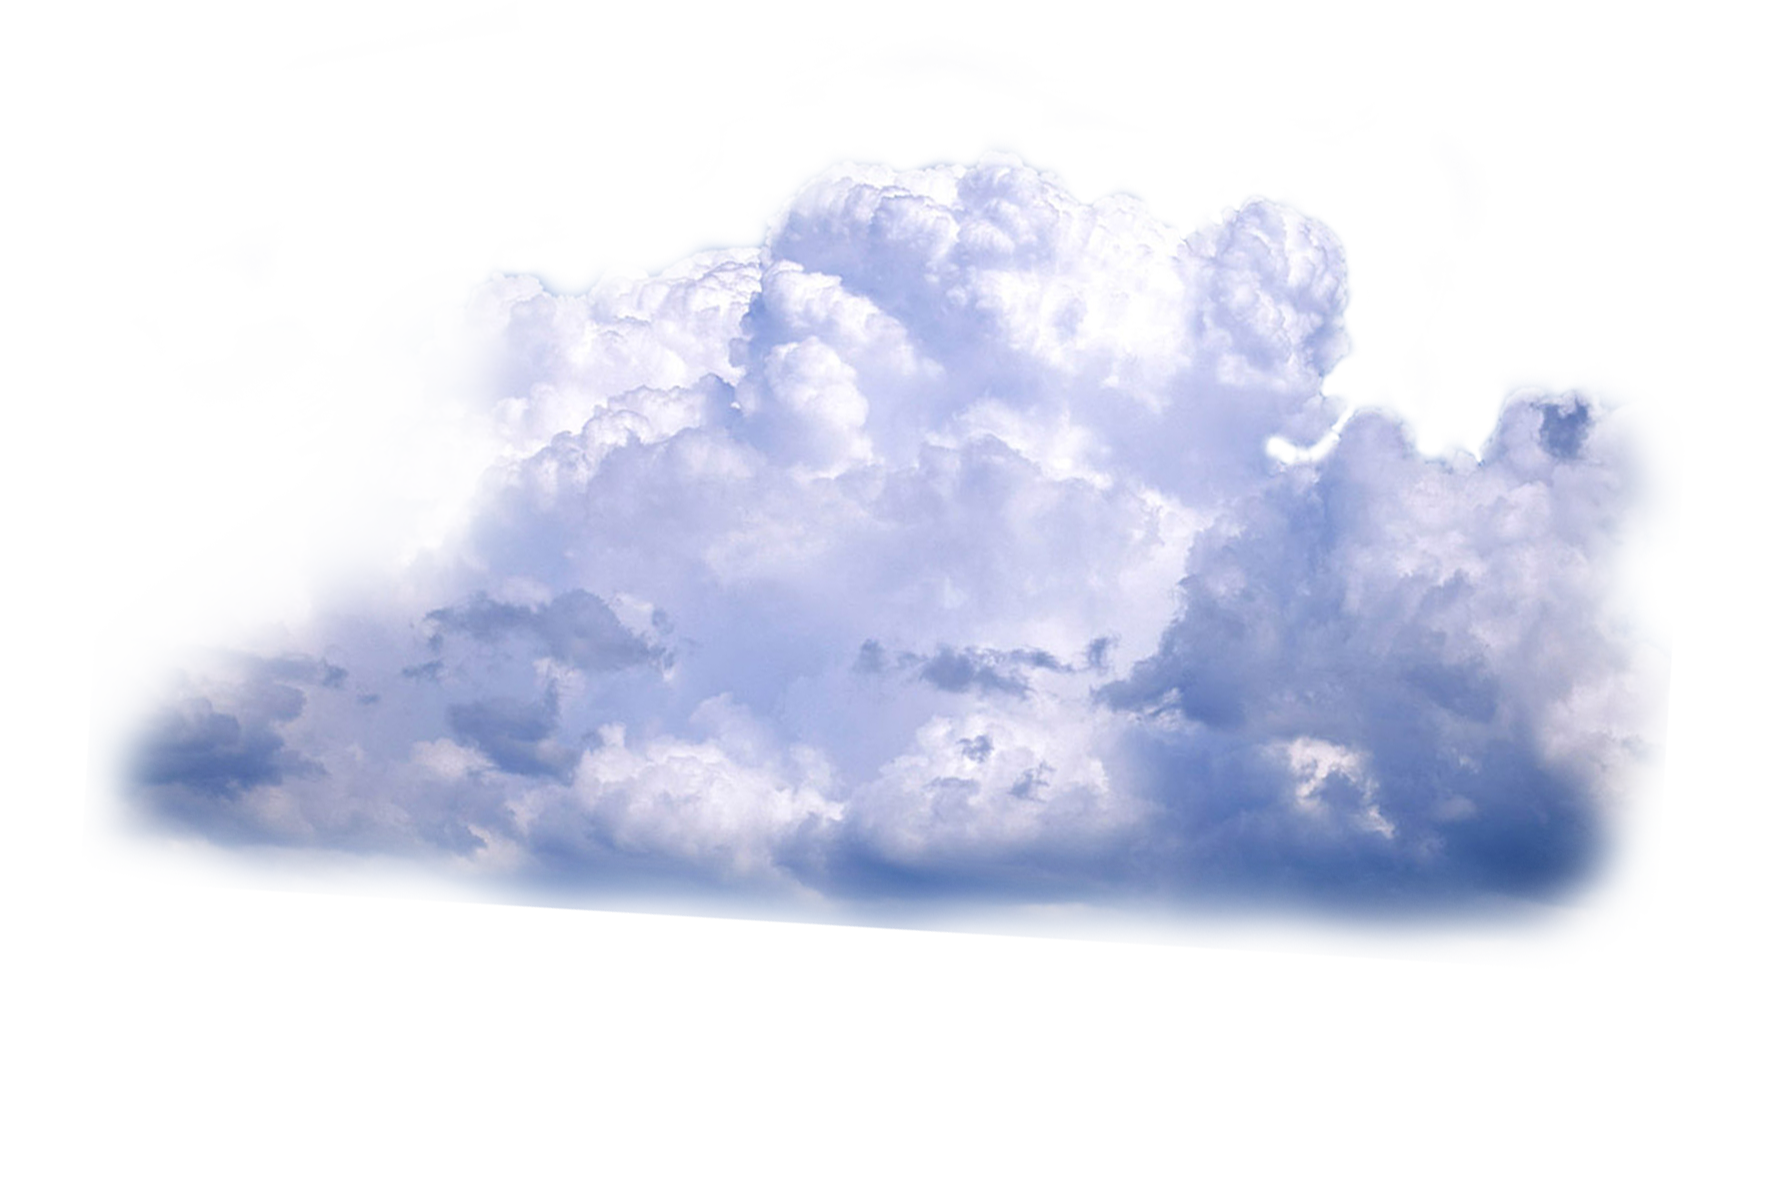 Clouds sky png. Cloud blue fluffy white